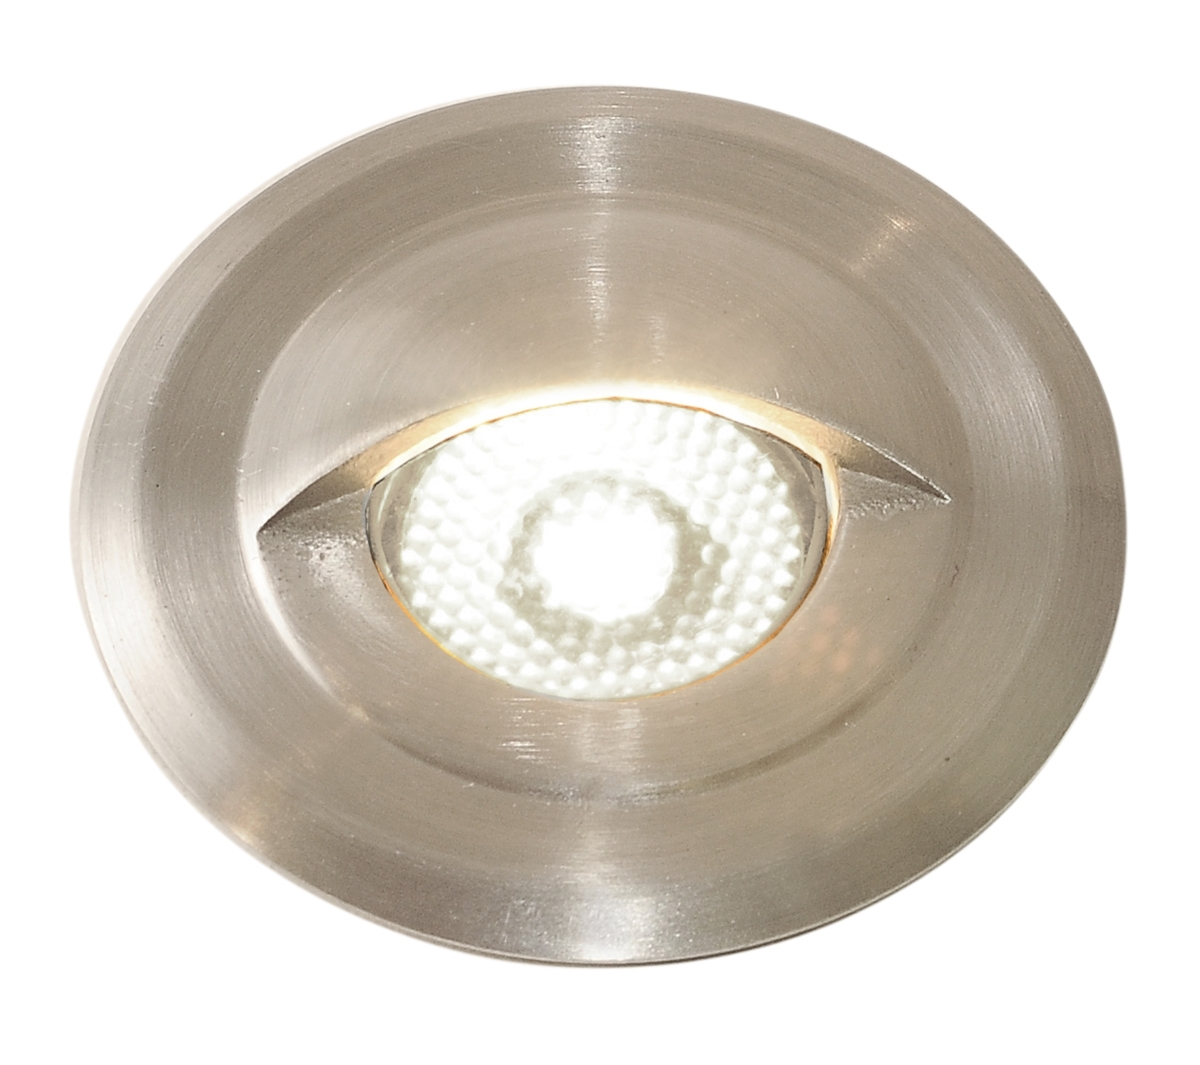 Outdoor Led Recessed Ceiling Lights • Led Lights Decor With Regard To Outdoor Led Recessed Ceiling Lights (View 8 of 15)